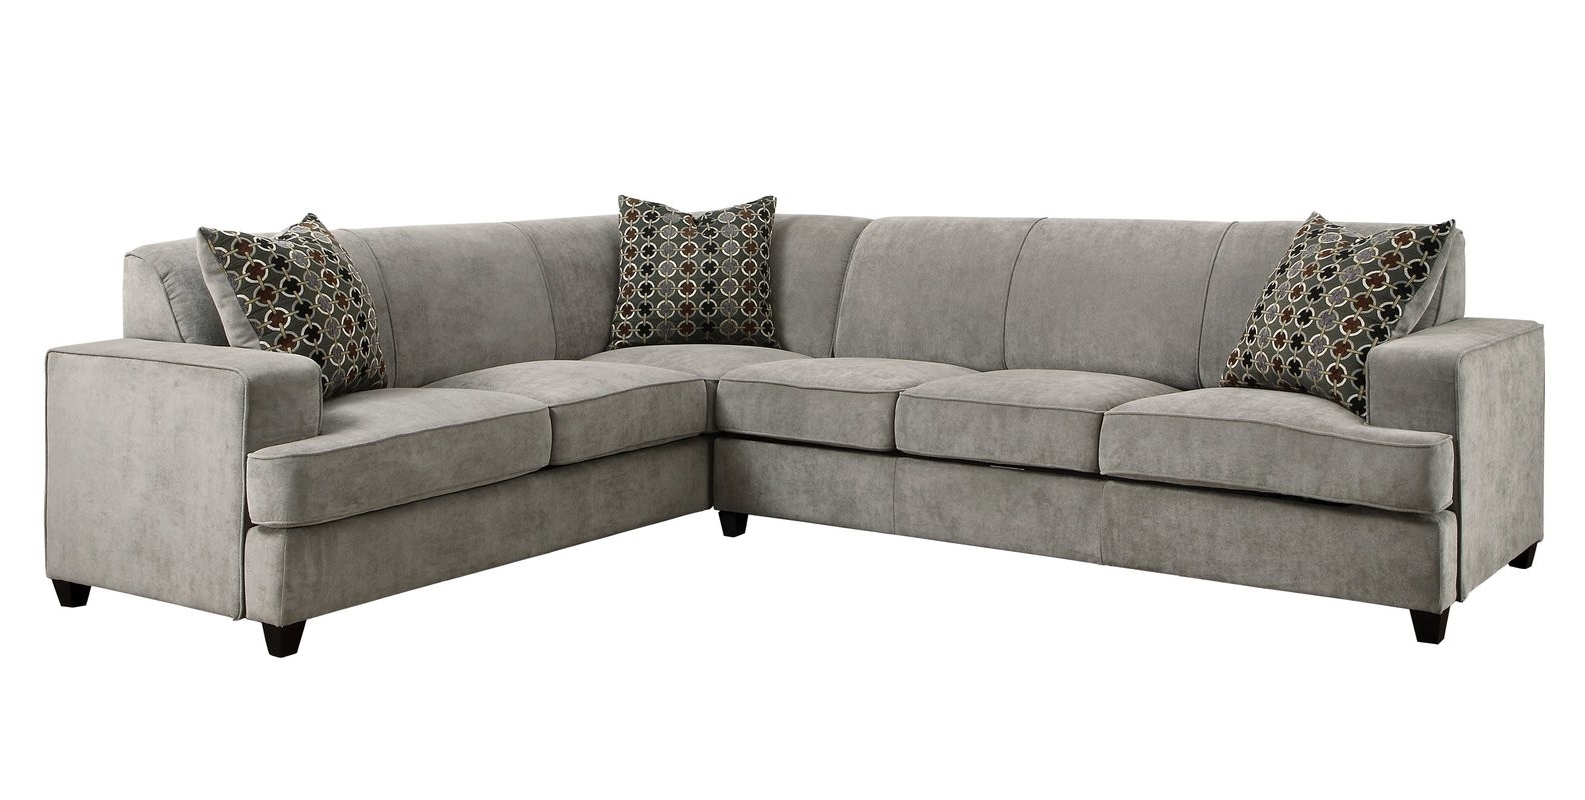 Elegant Simmons Sectional Sofa Joss And Main – Mediasupload Throughout Latest Joss And Main Sectional Sofas (View 5 of 20)